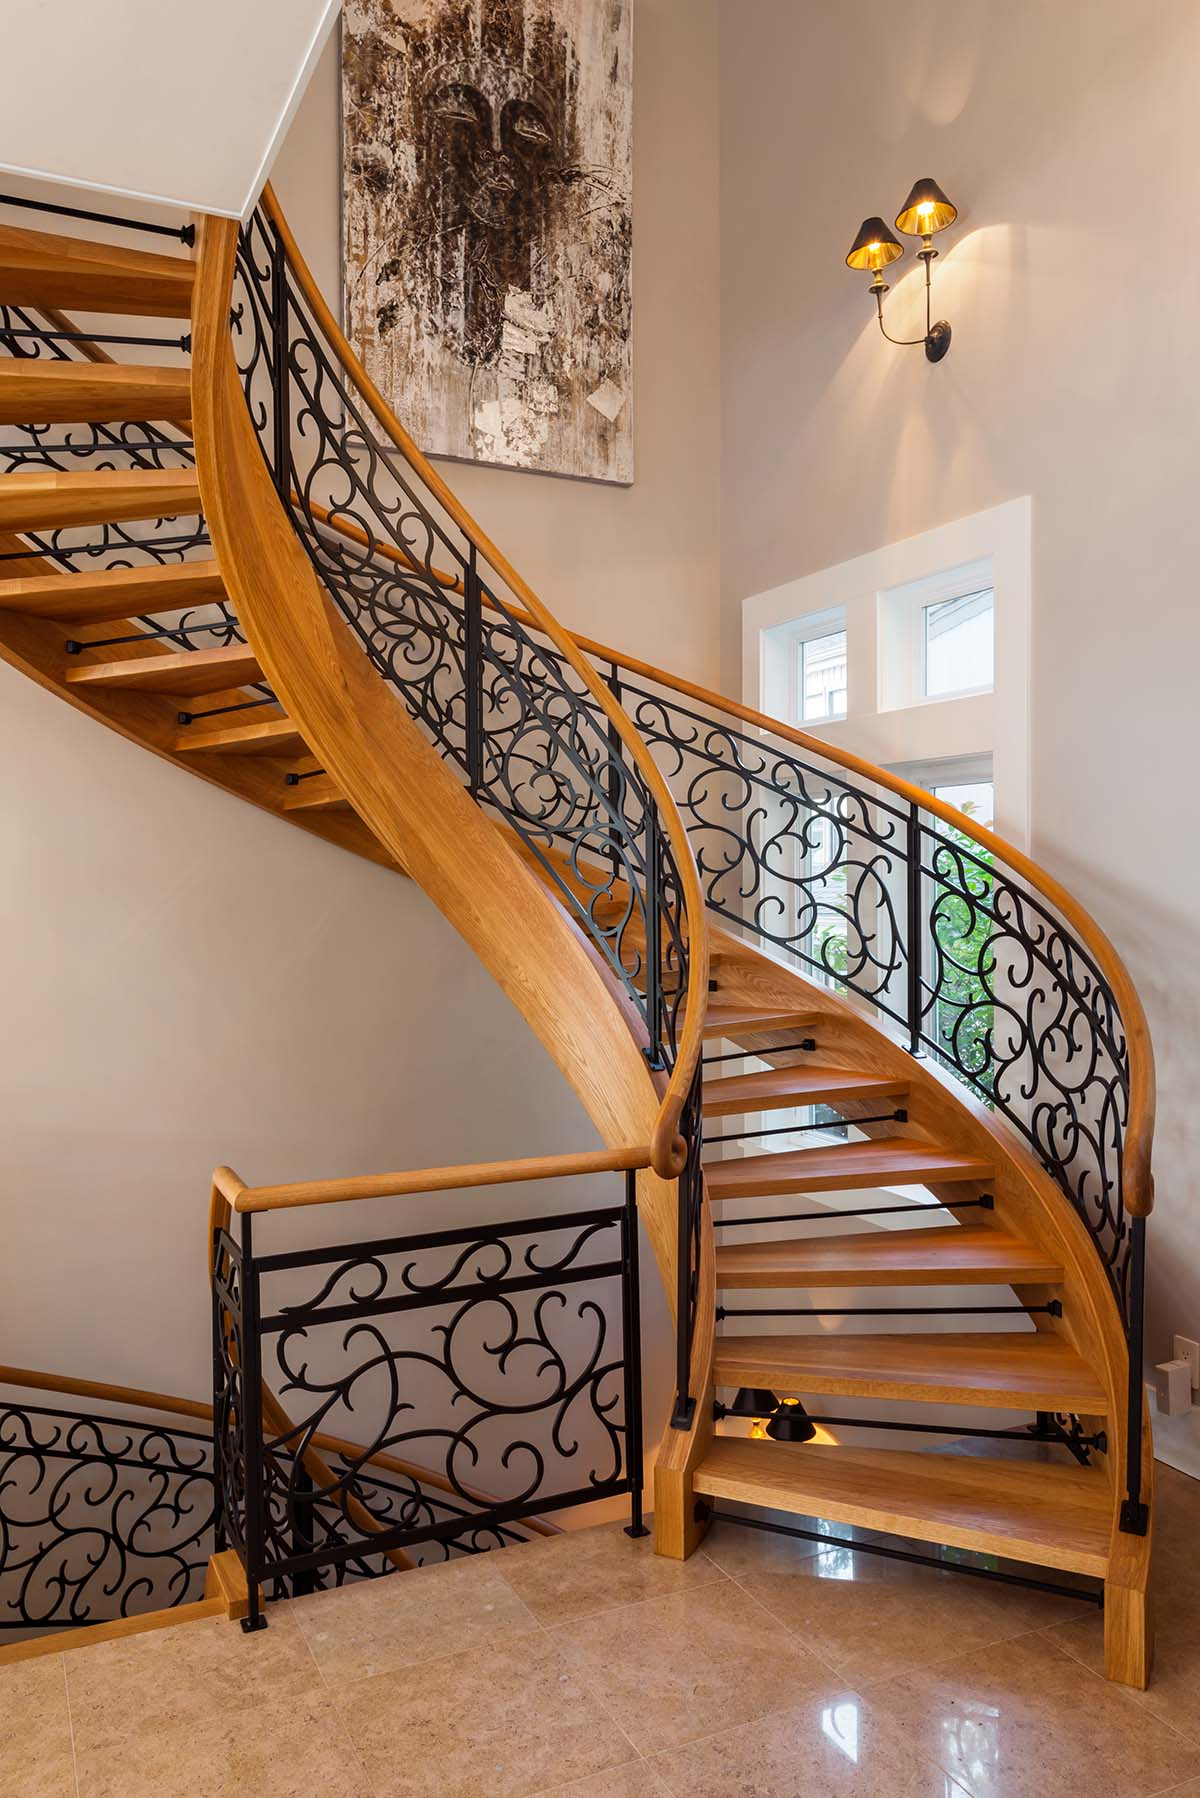 mw design workshop custom staircases stairs handrails